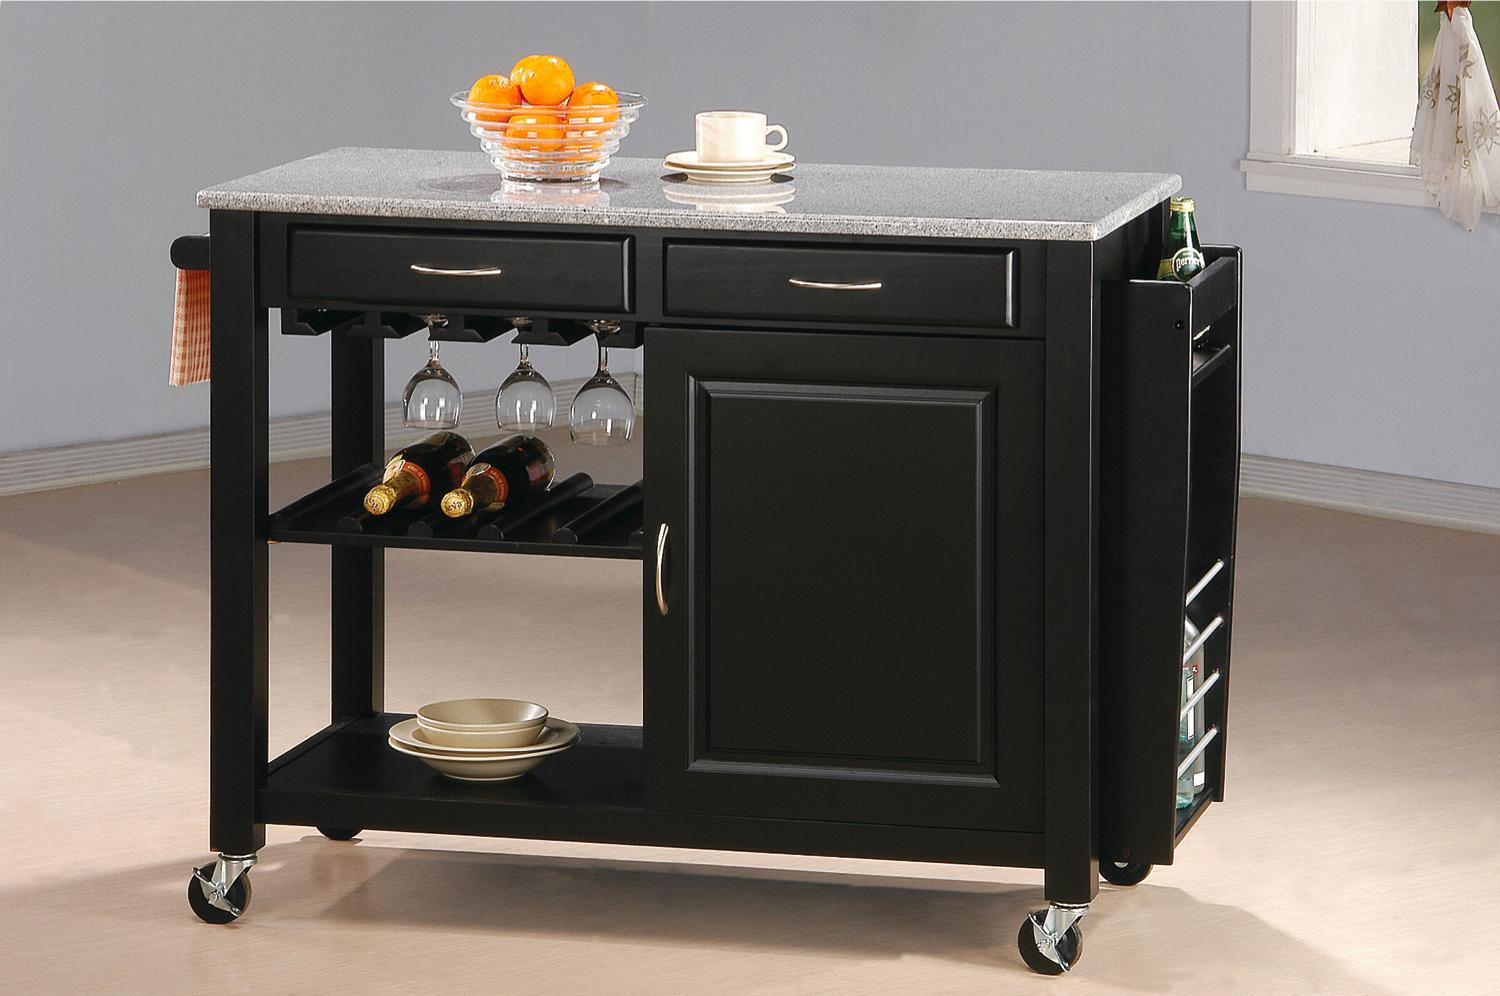 kitchen islands and carts furniture coaster kitchen carts 5870 kitchen cart with granite top del sol furniture kitchen islands 7734